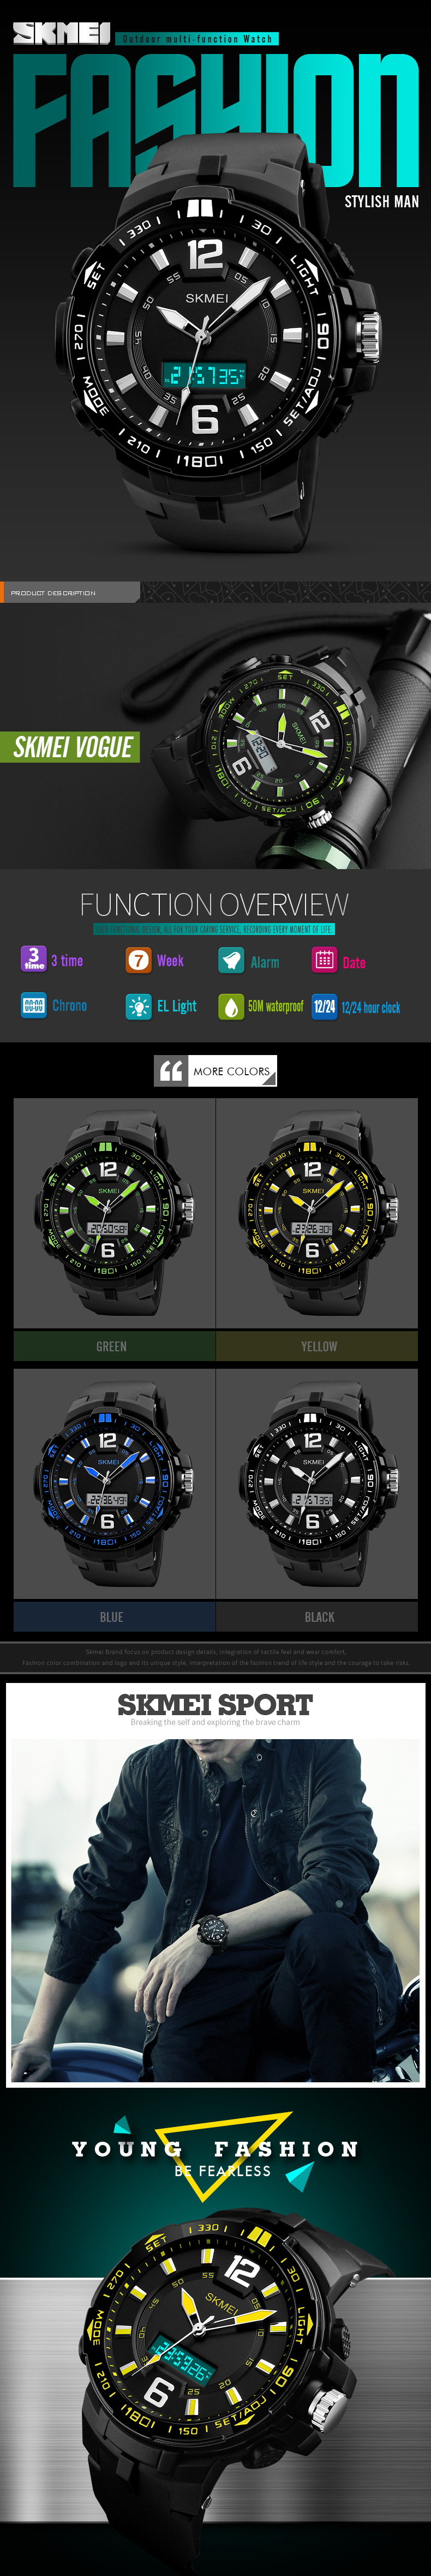 SKMEI 1273 Outdooors Men Digital Watch 50M Waterproof Multifunction Fashionable LED Wirstwatches